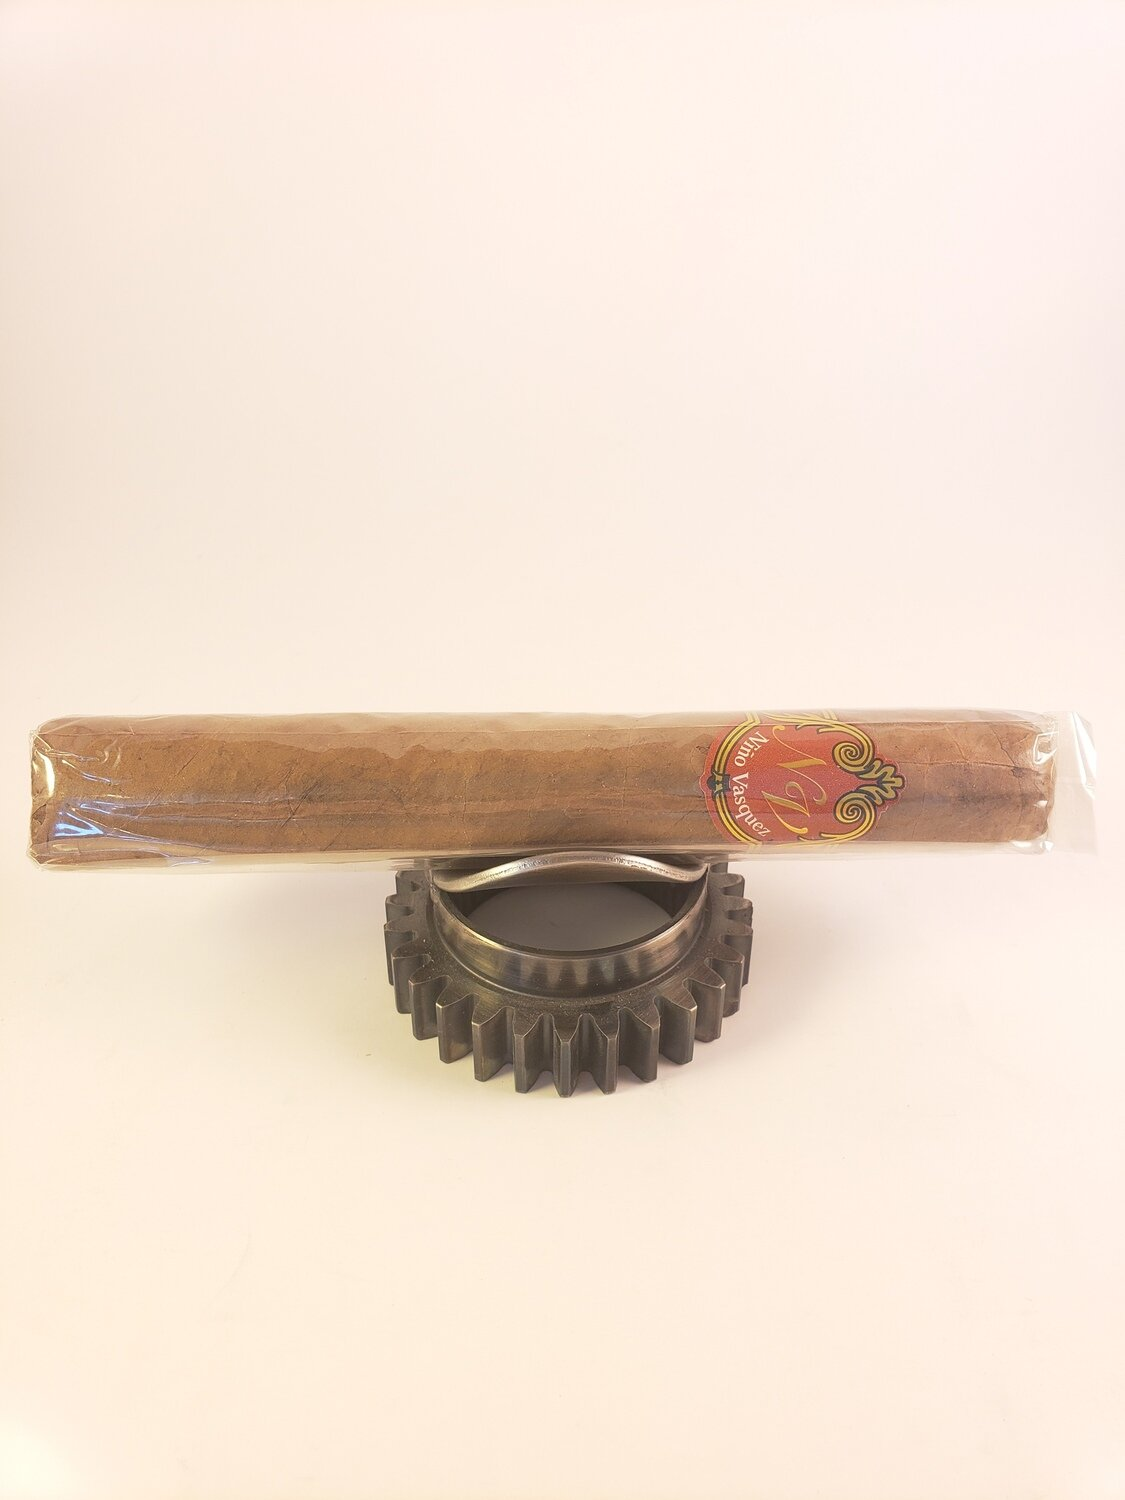 Nino Vasquez Ecuadorian Connecticut Double Toro 6 x 60 Single Cigar